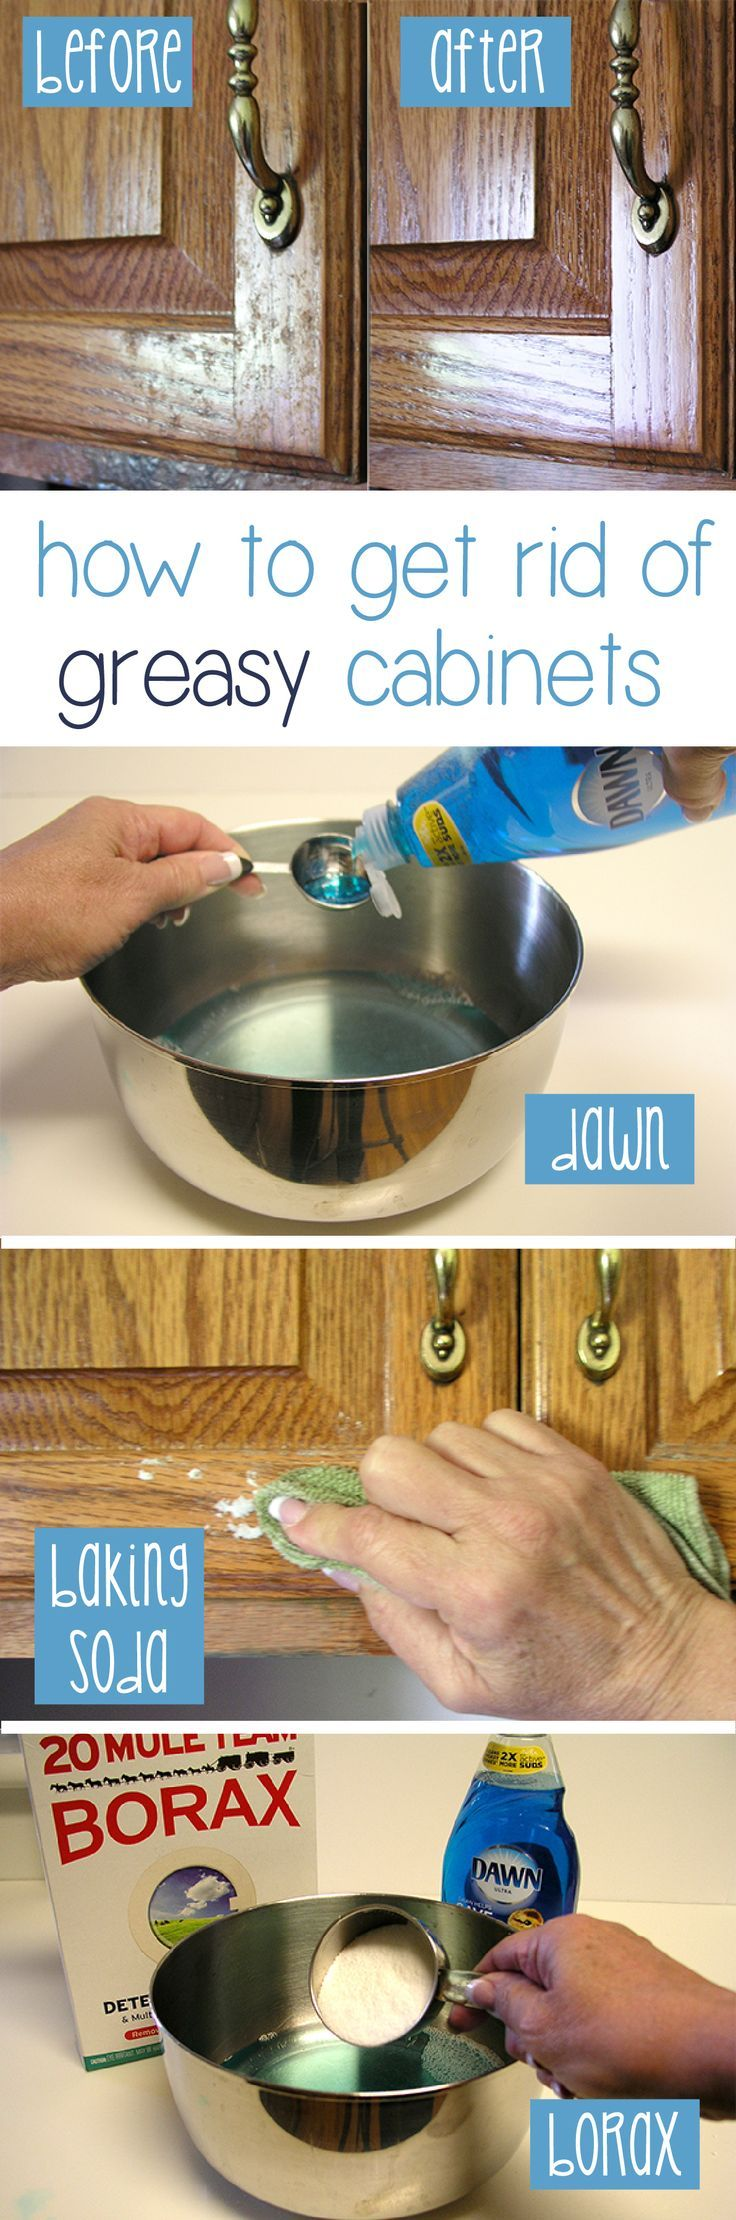 how to clean grease from kitchen cabinet doors stains